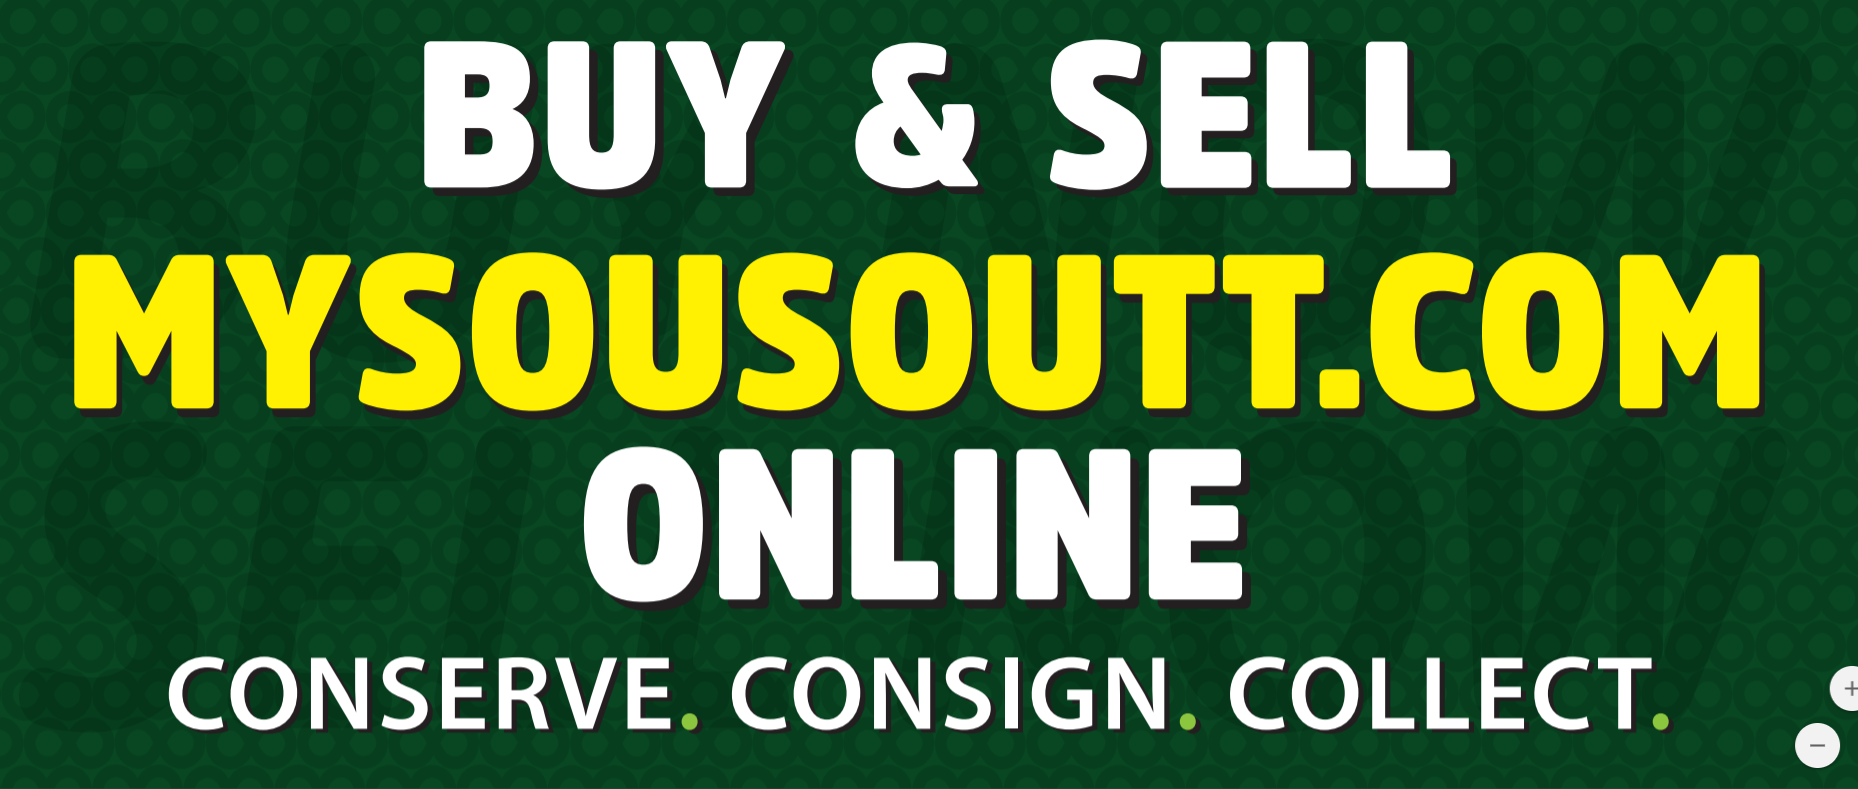 BUY & SELL ONLINE